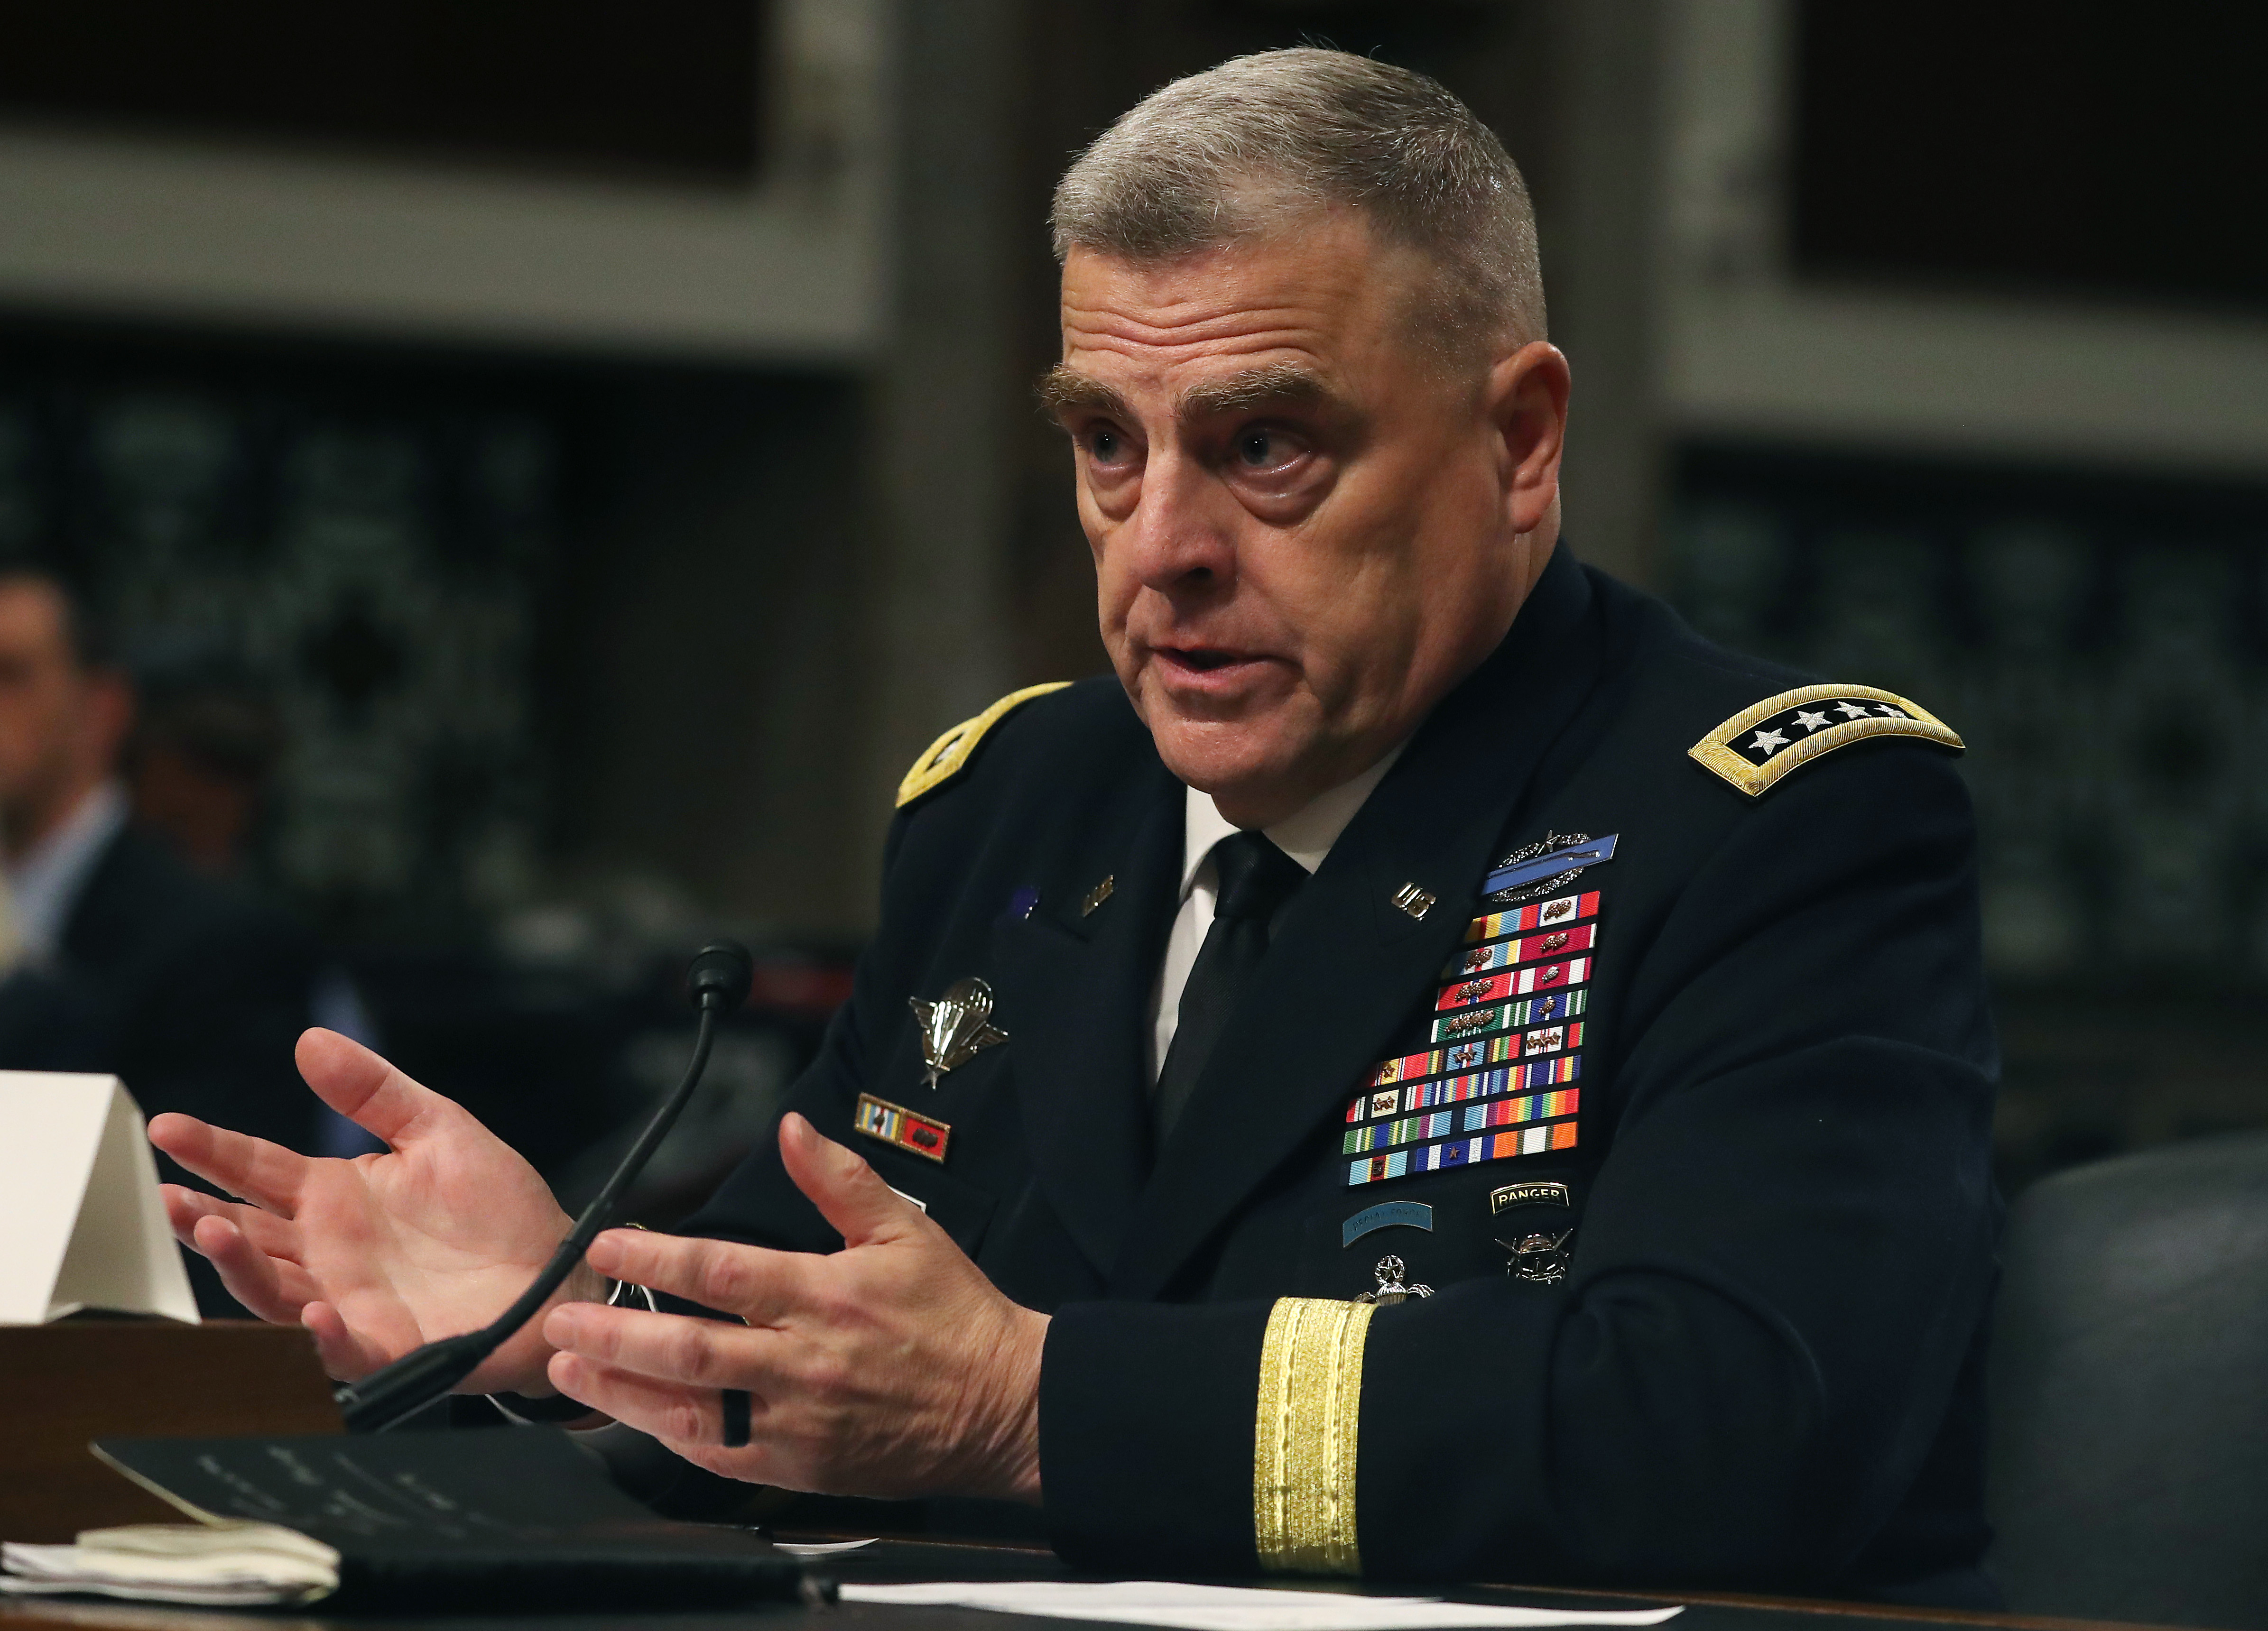 Top US general hits back against 'offensive' Republican criticism and defends Pentagon diversity efforts